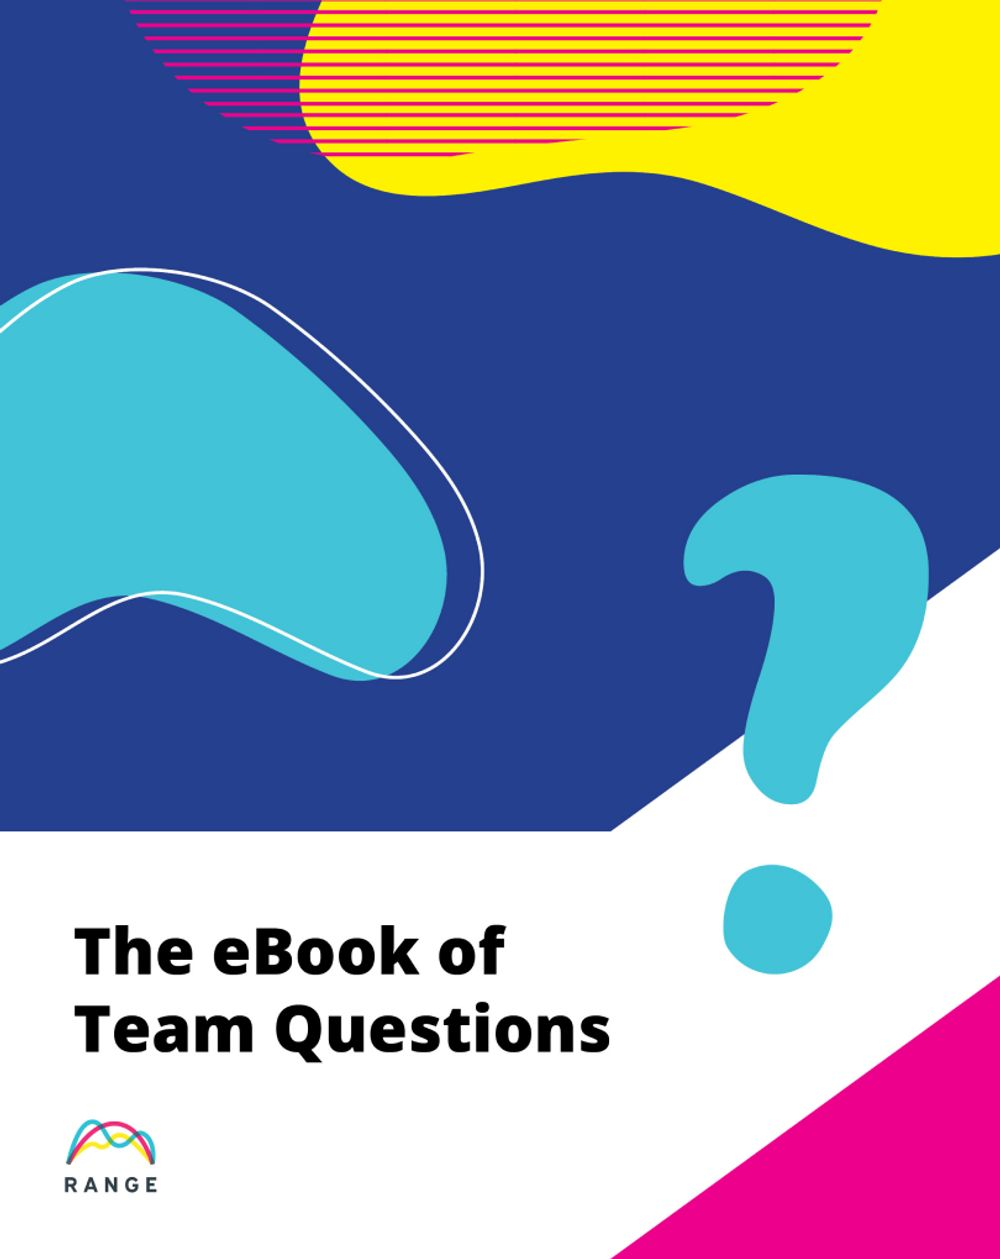 Download our free eBook on Team Questions